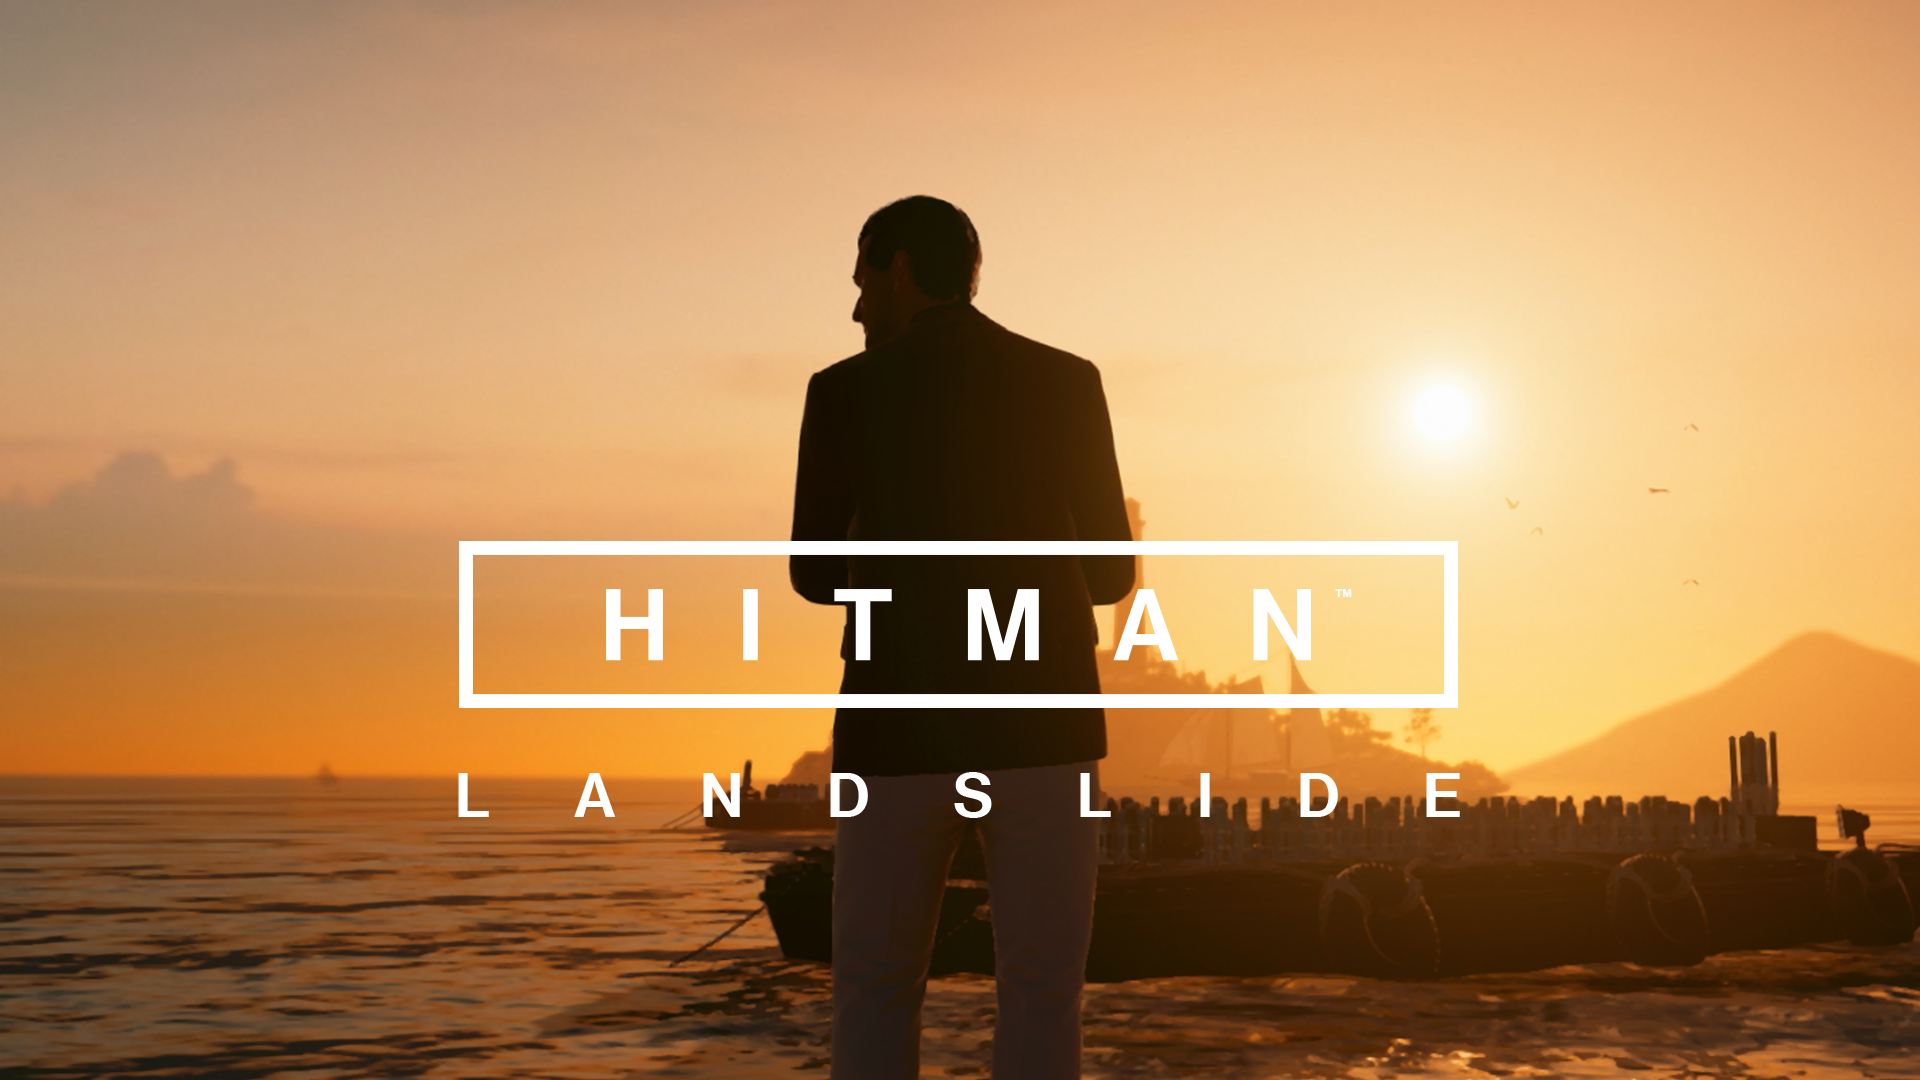 HITMAN_Artwork_Landslide_Teaser_1920x1080_26012017_1485424454